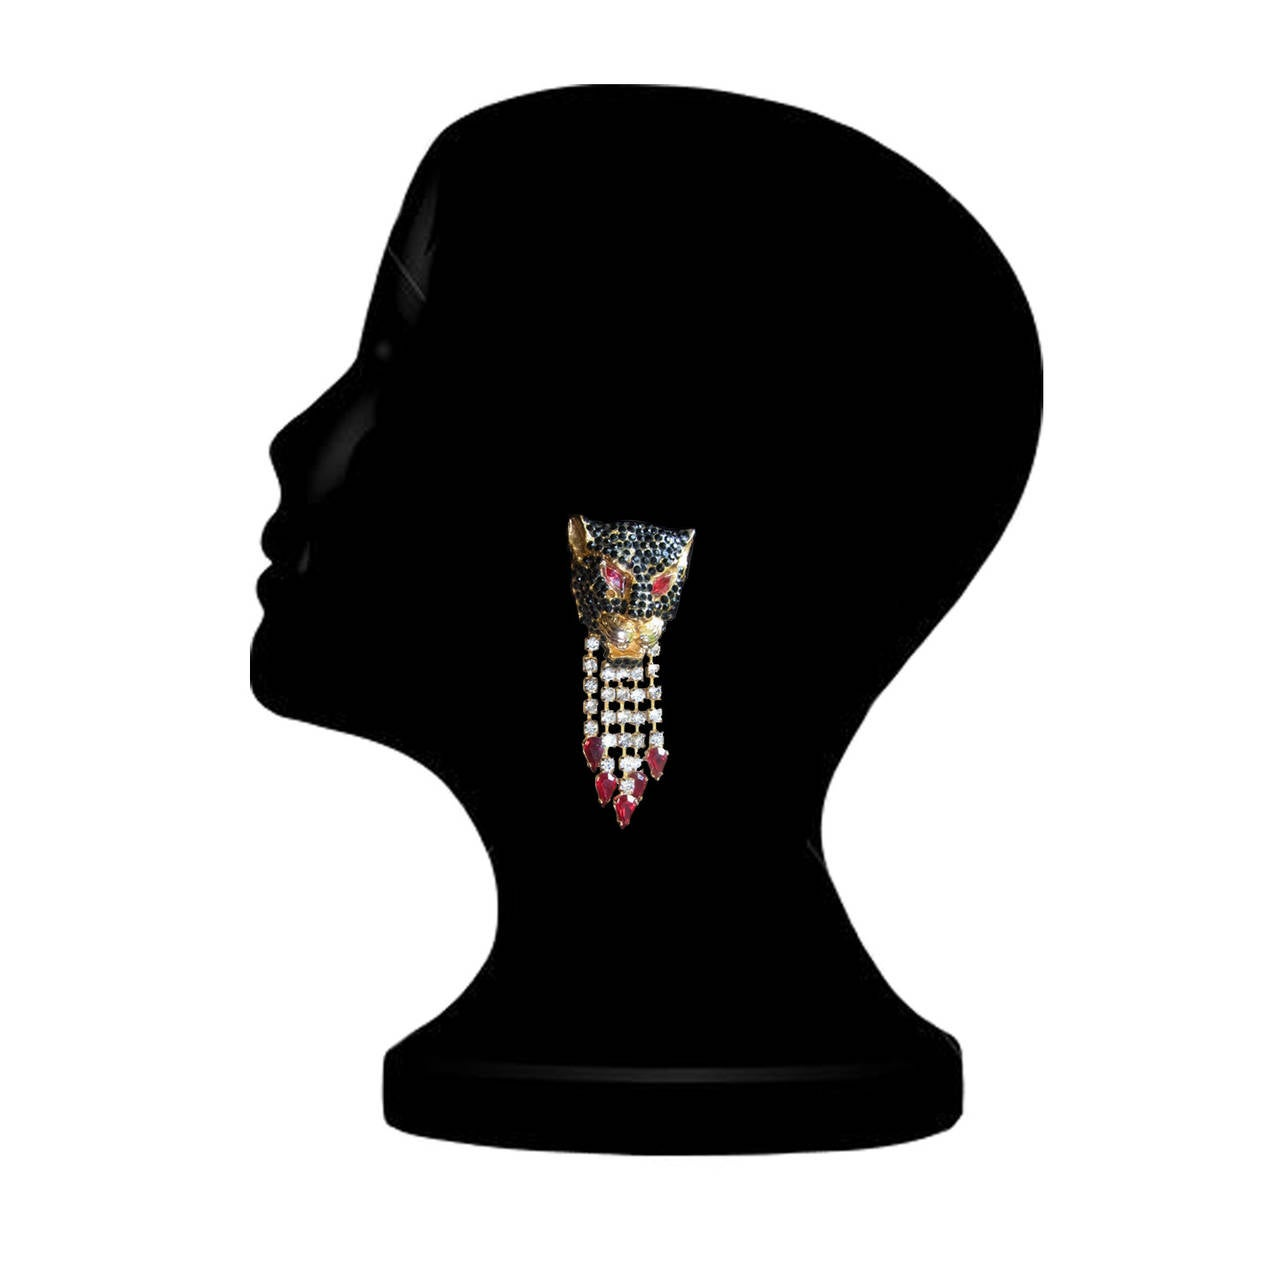 Gianni Versace Black Panther Pendent Head Clip 1990's 2